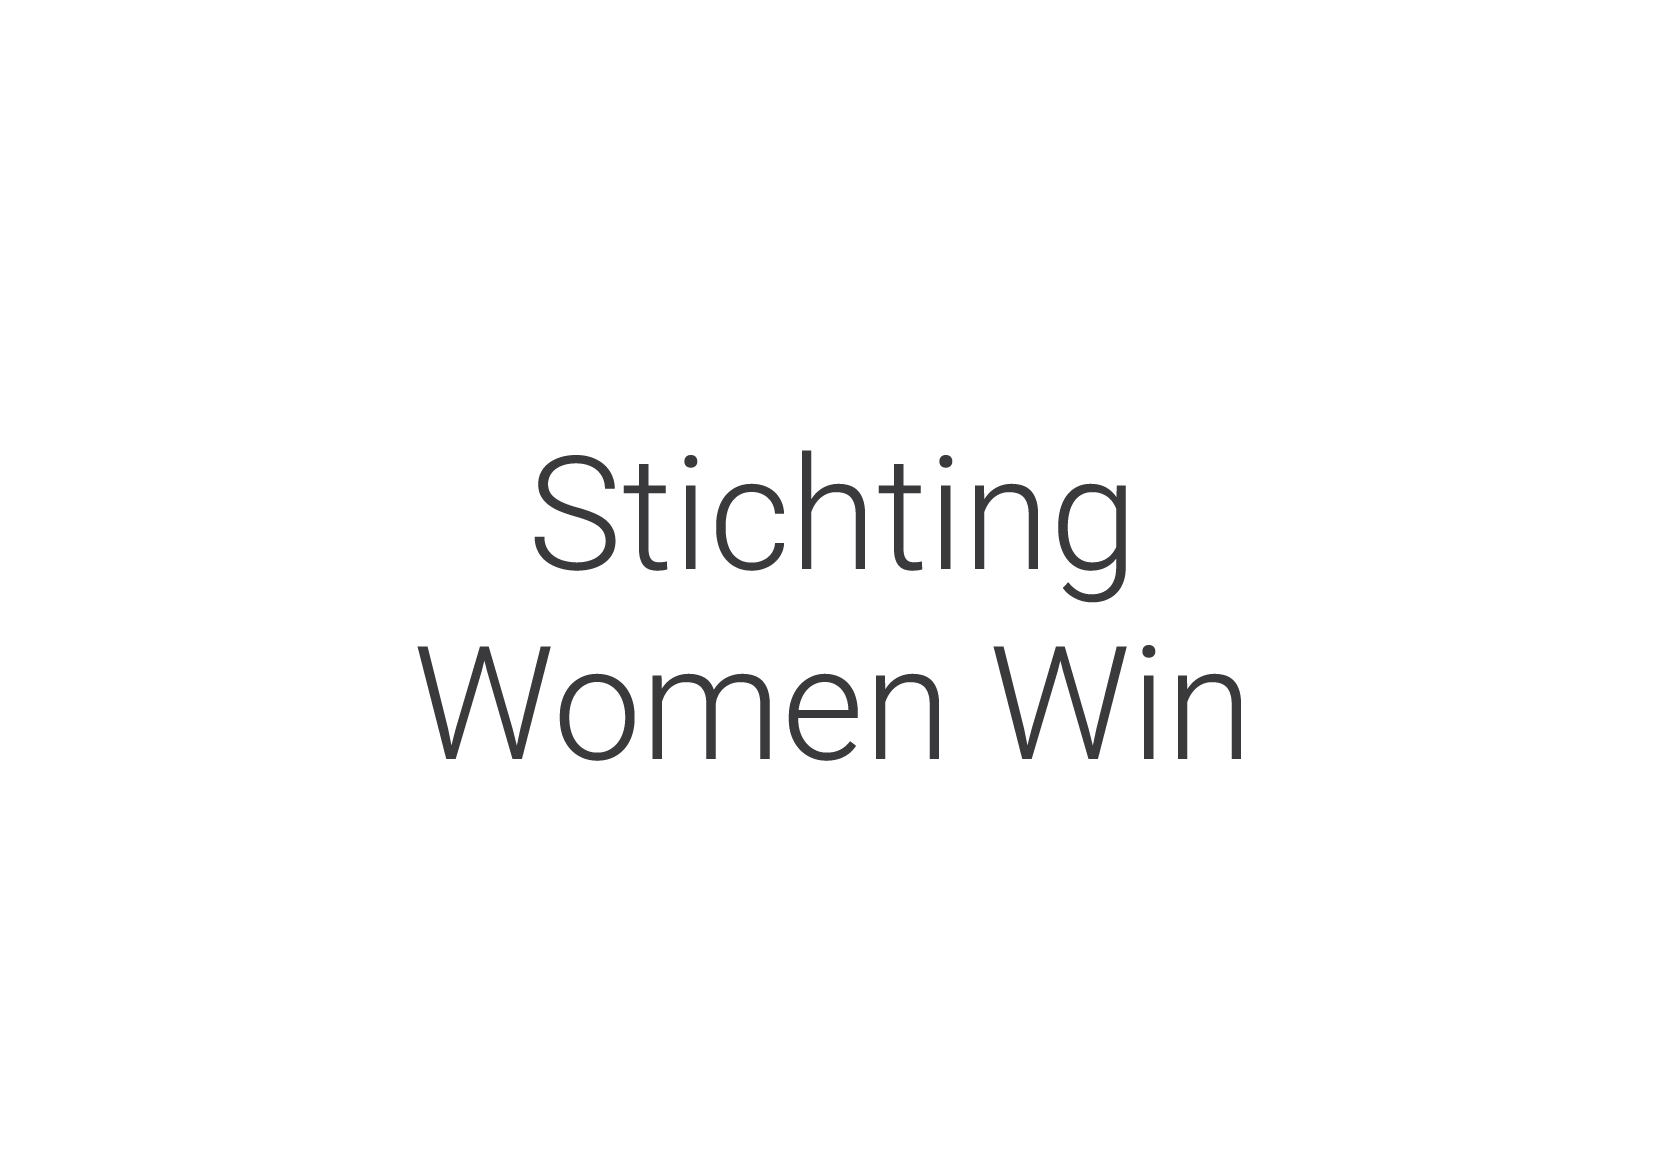 Stichting Women Win